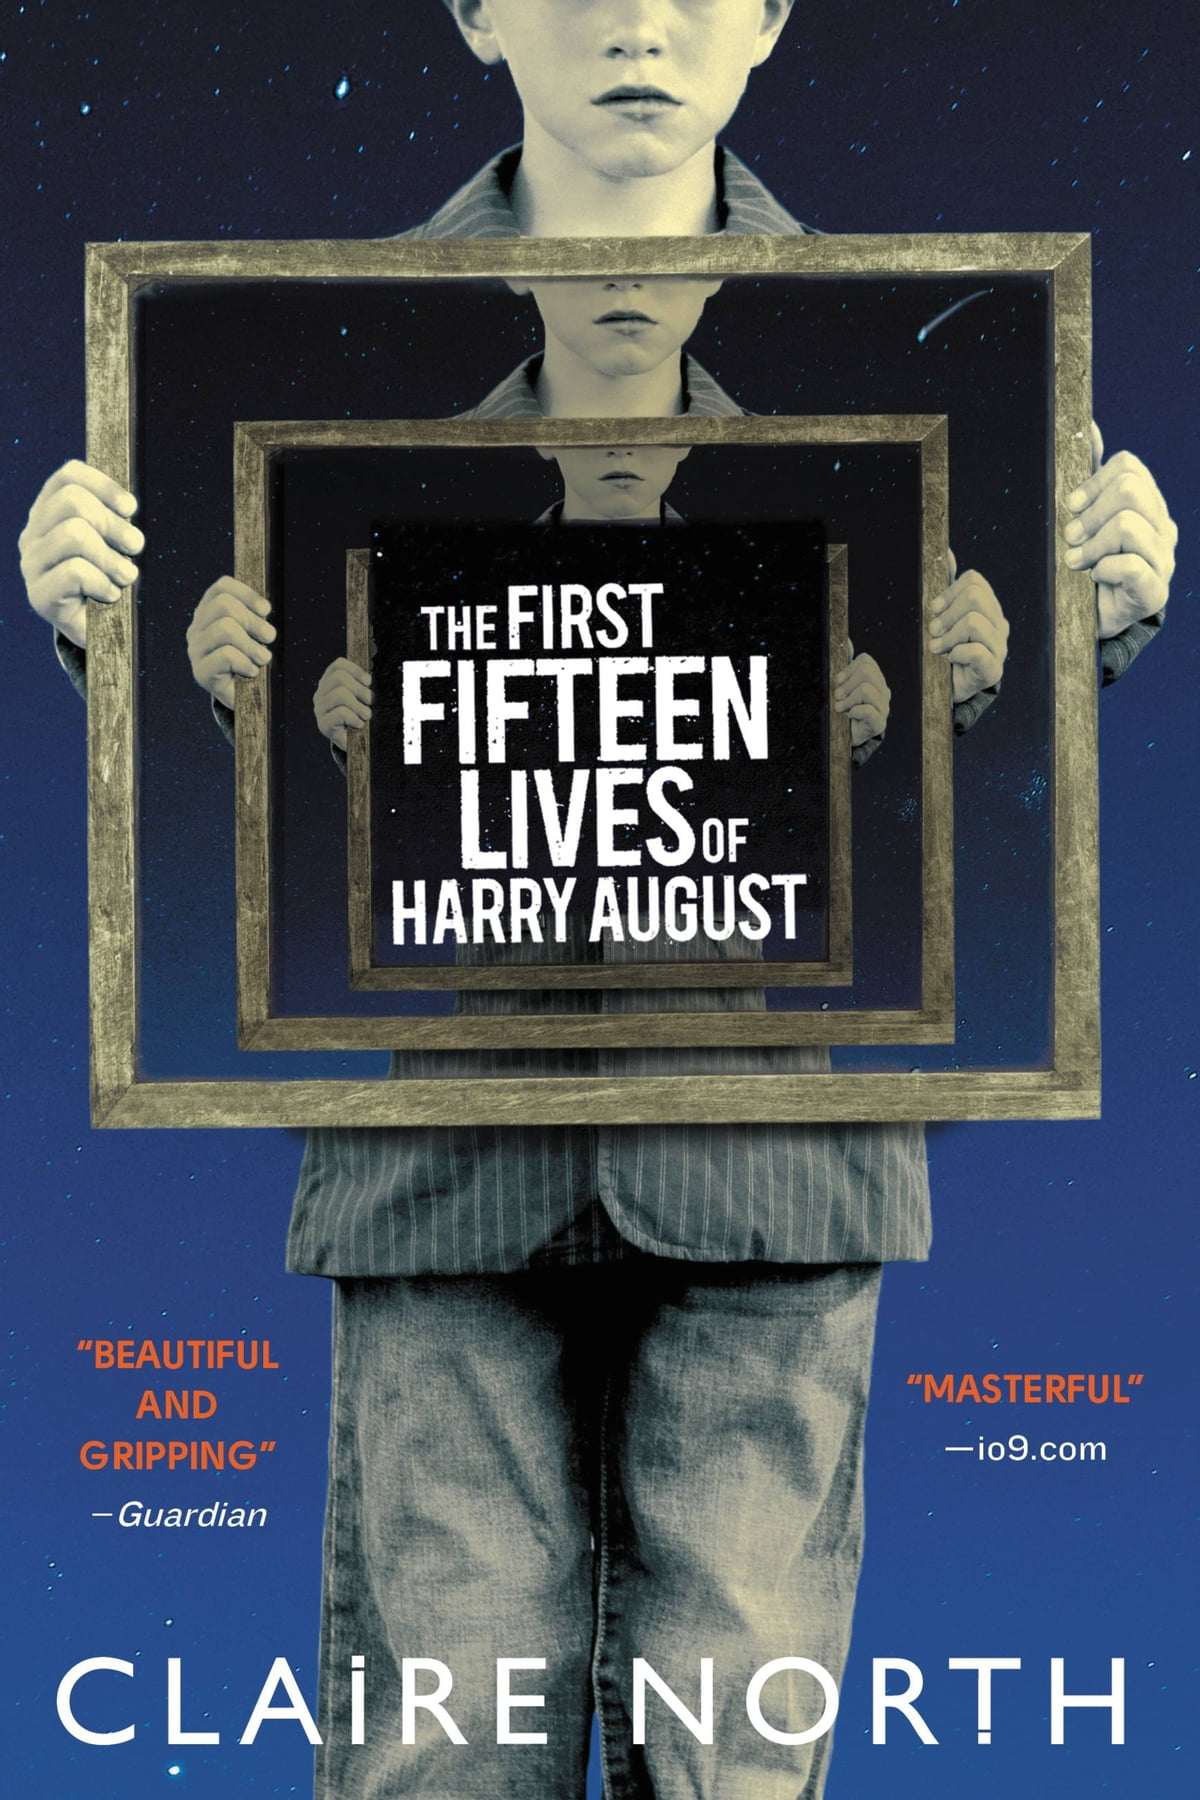 The First Fifteen Lives Of Harry August Ebook By Claire North   9780316399630  Rakuten Kobo